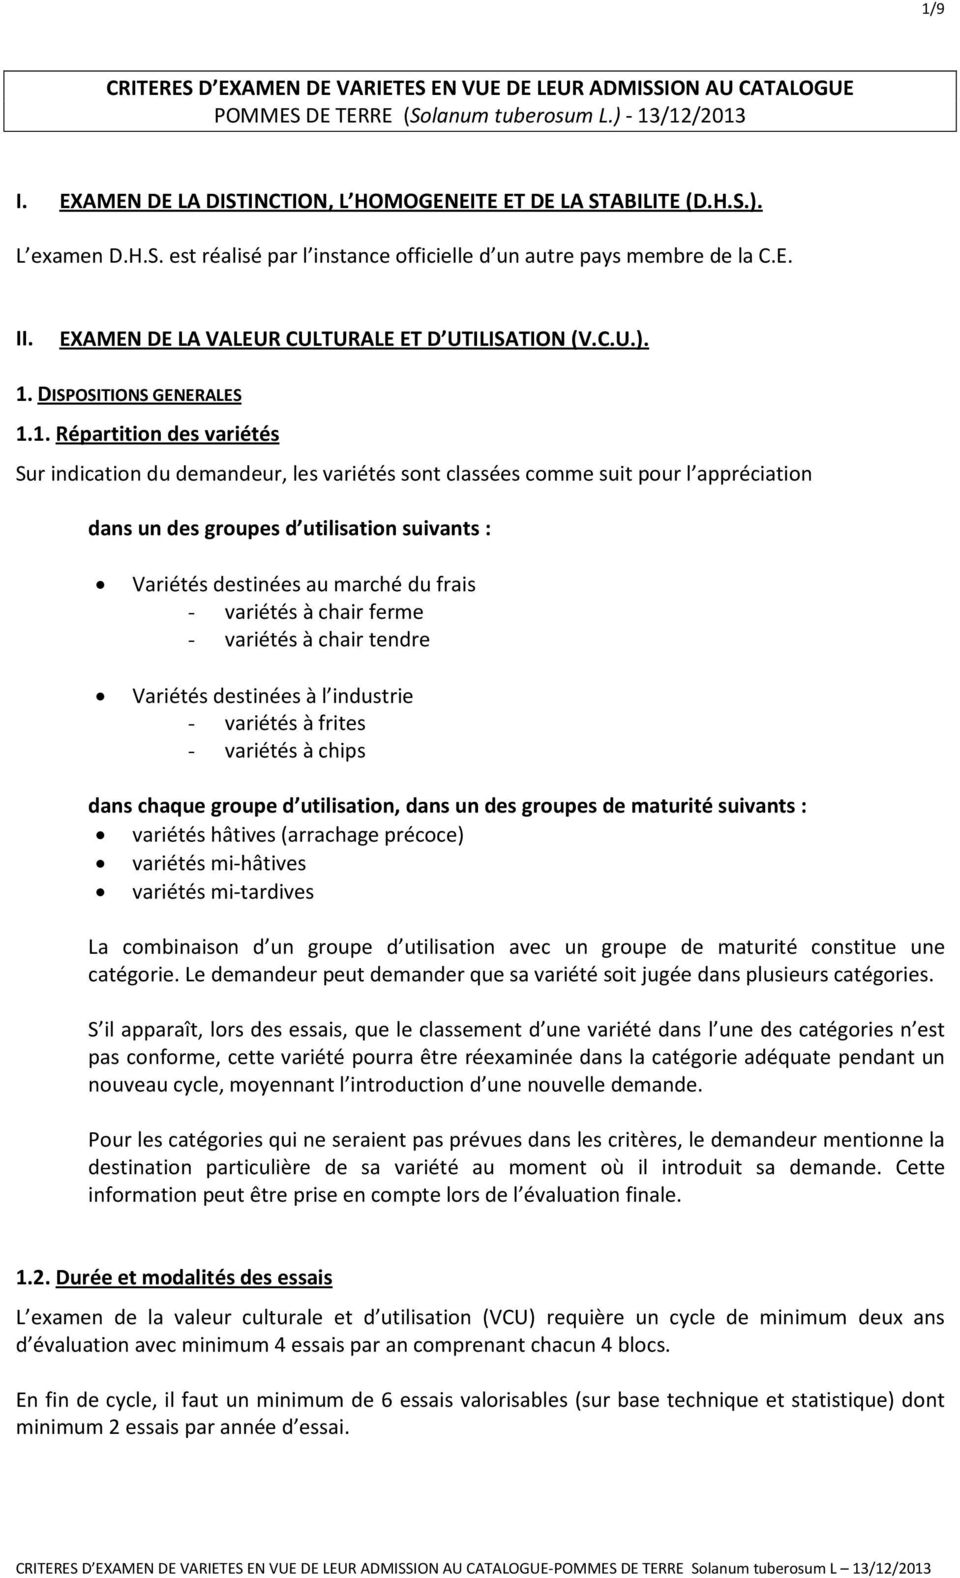 DISPOSITIONS GENERALES 1.